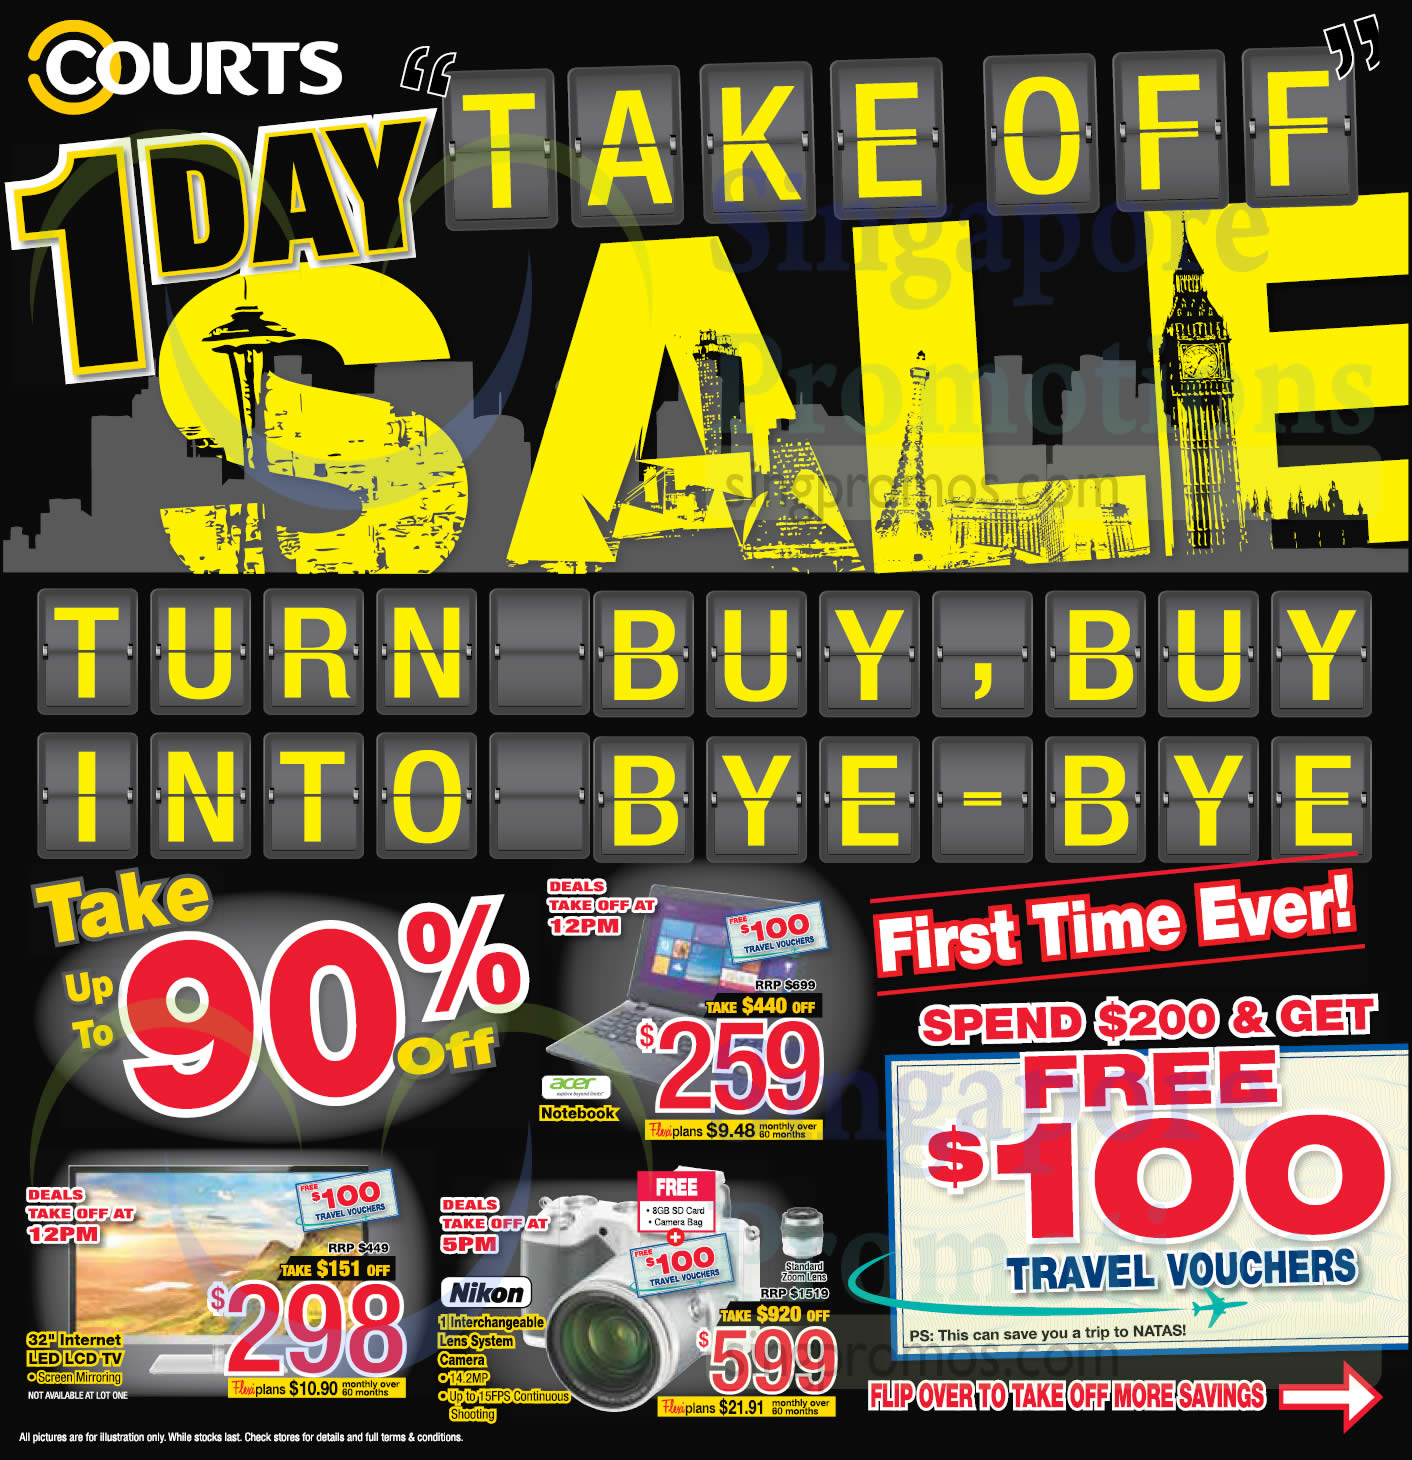 Up to 90 Percent off Take Off Sale